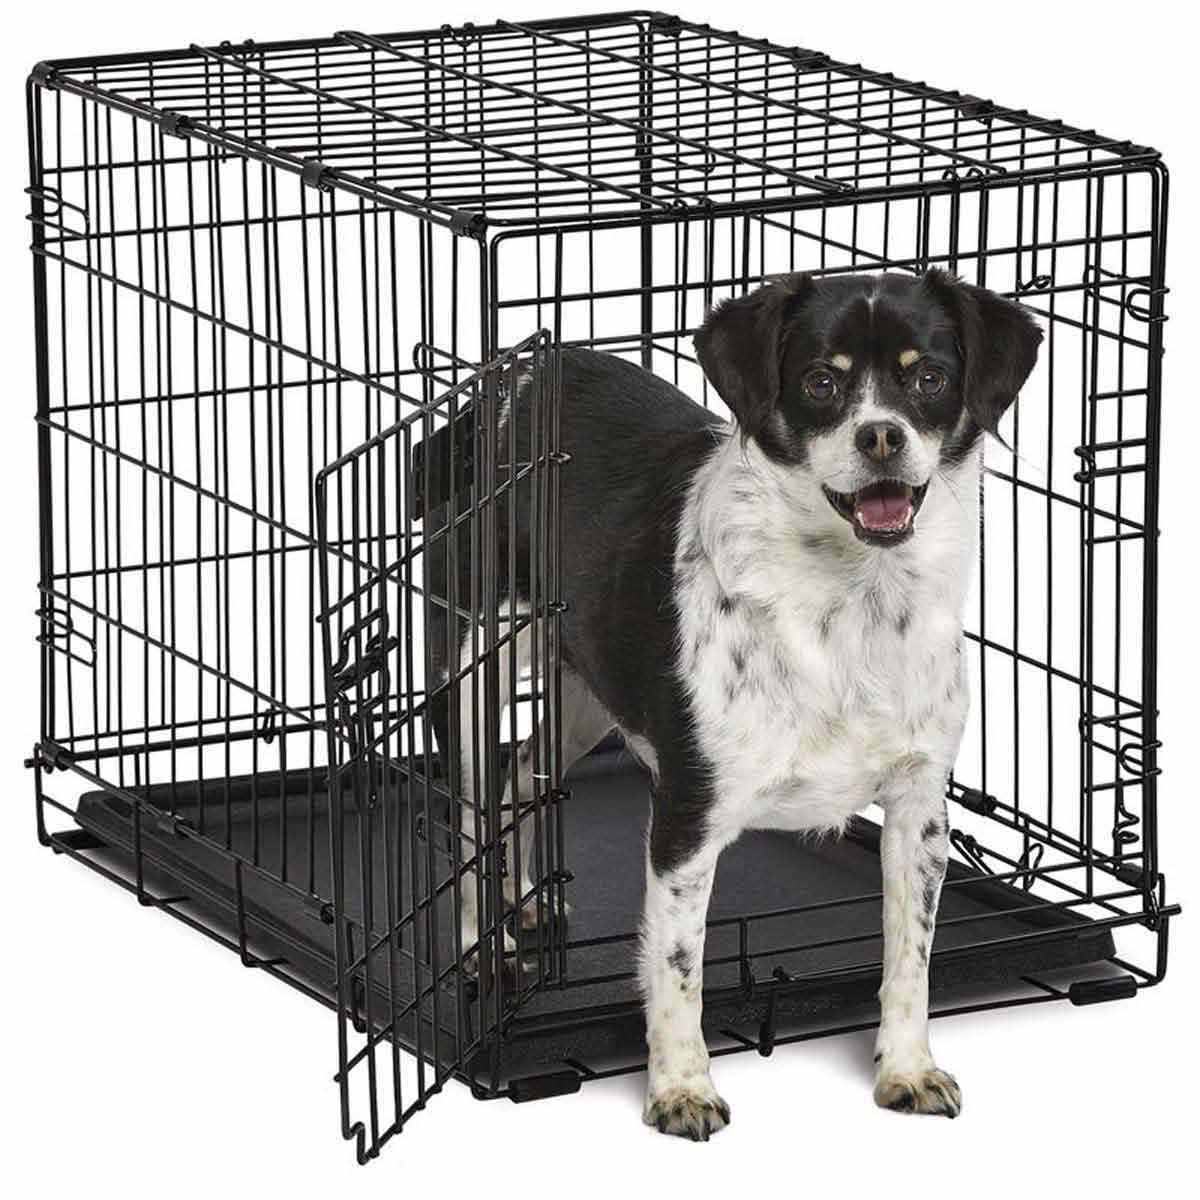 Midwest ConTour Single Door Kennel for Smaller Dogs - 25 inches by 17 inches by 19 inches